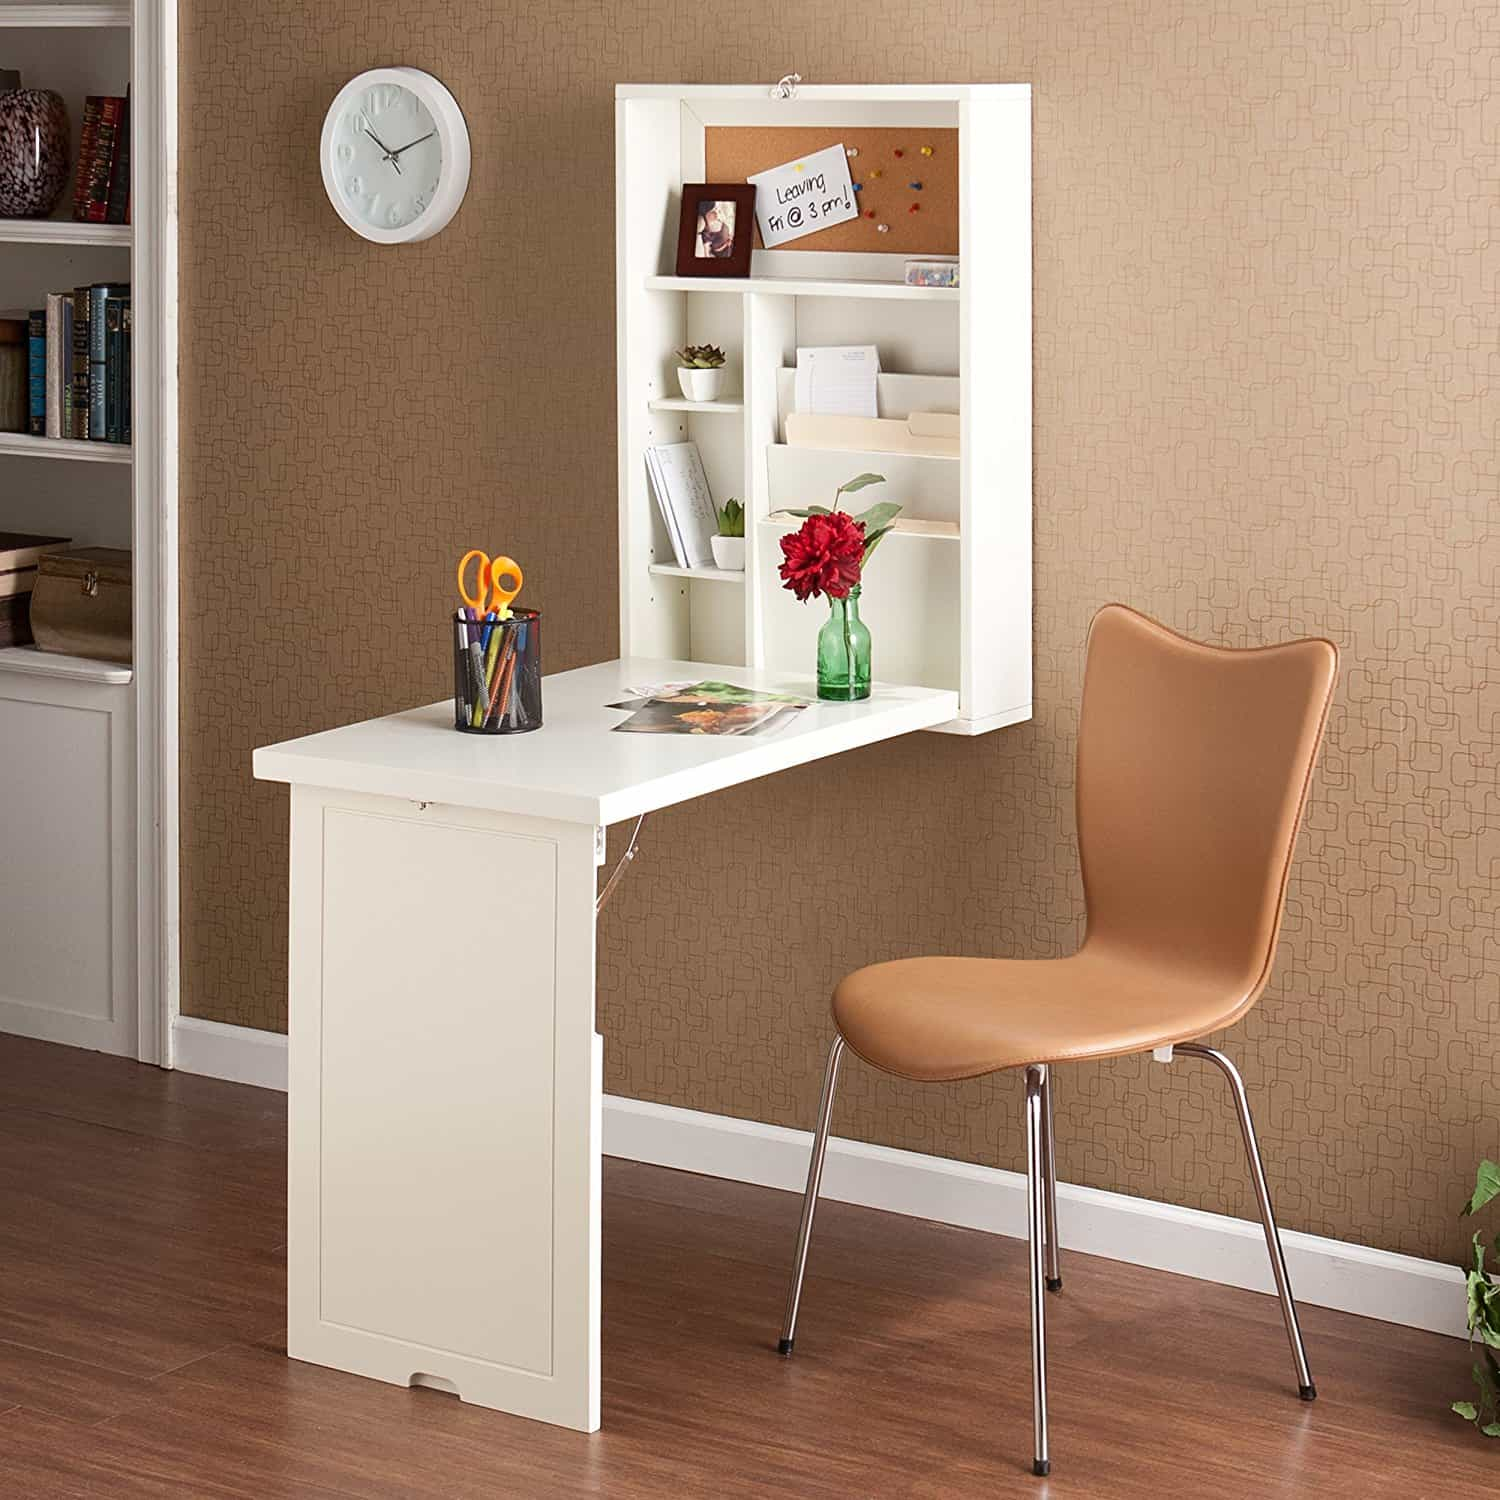 white wall mounted fold out desk with tan chair decorative items on desk tan wall with white clock